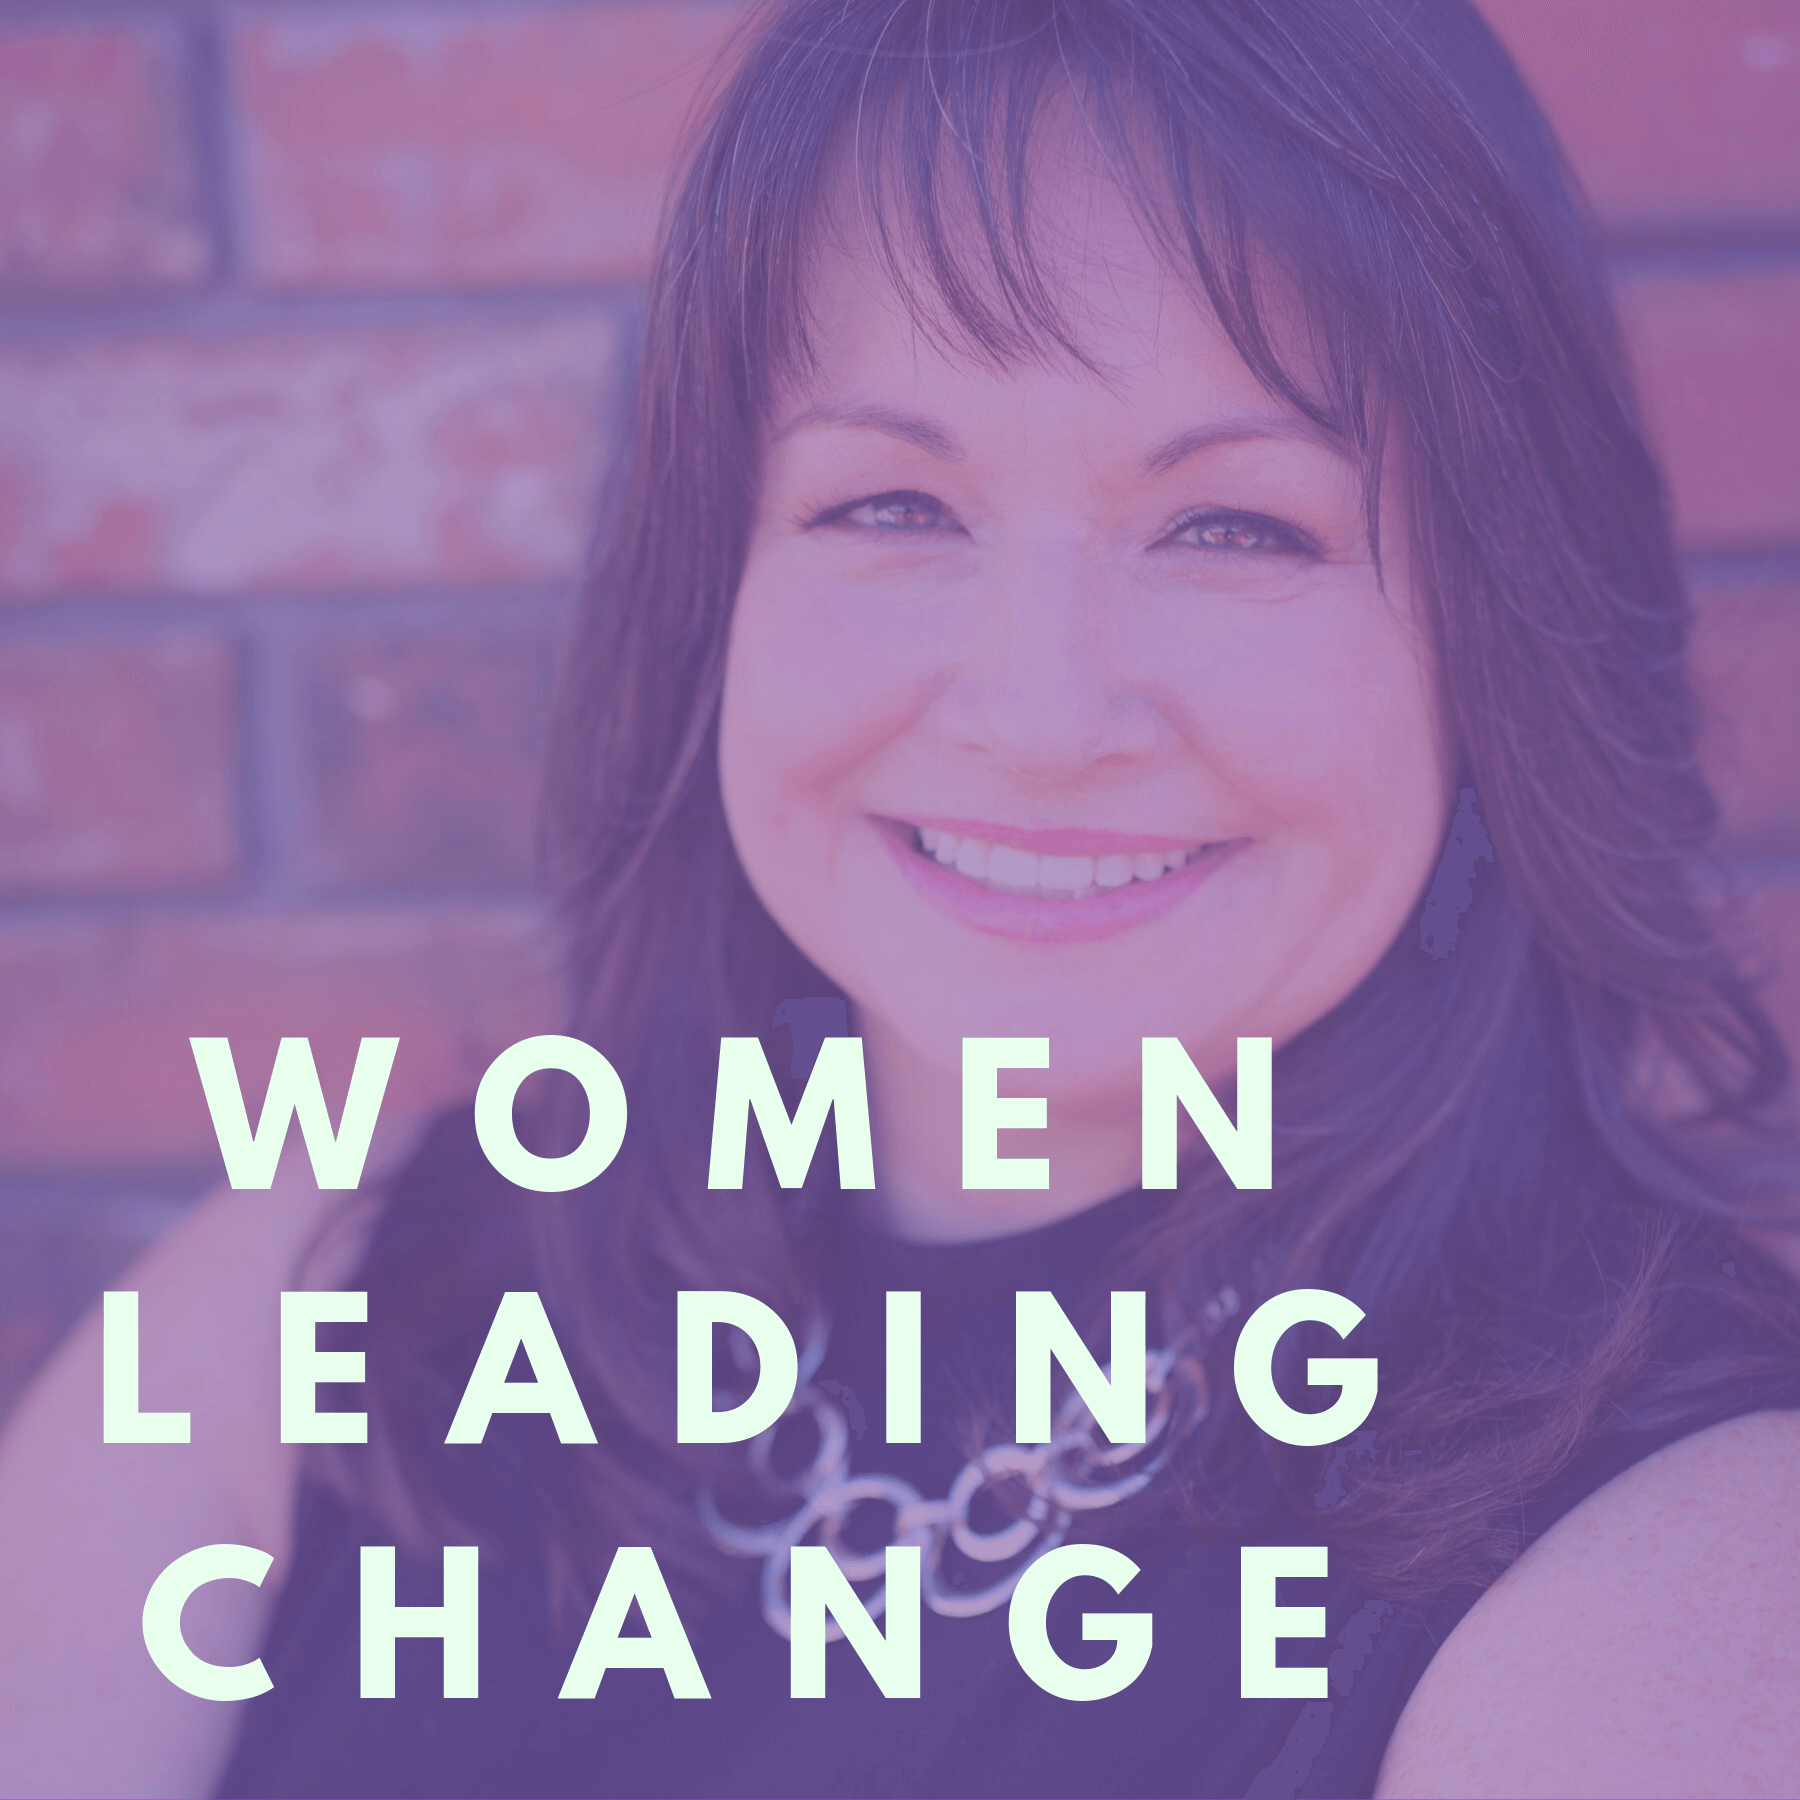 The First App Designed to Support the Mental and Emotional Health of Women Entreprenurs - an Interview with Laurel Anne Stark